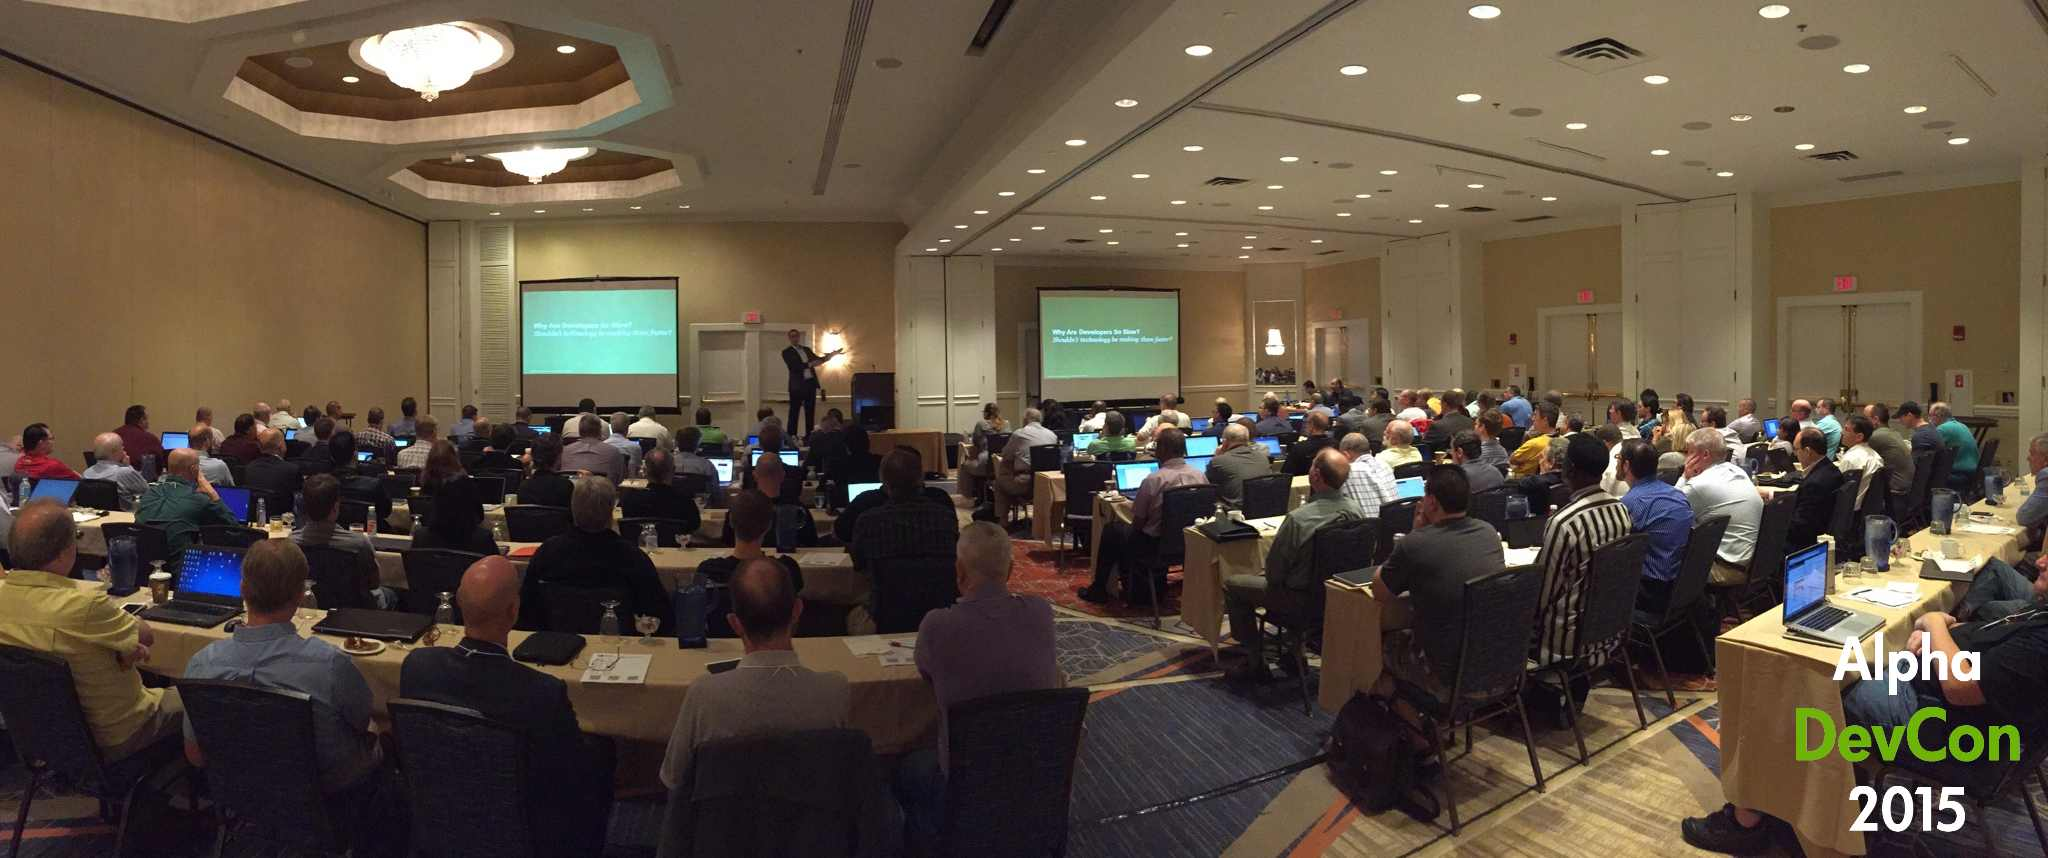 Michael Facemire of Forrester Research addresses attendees at Alpha DevCon 2015